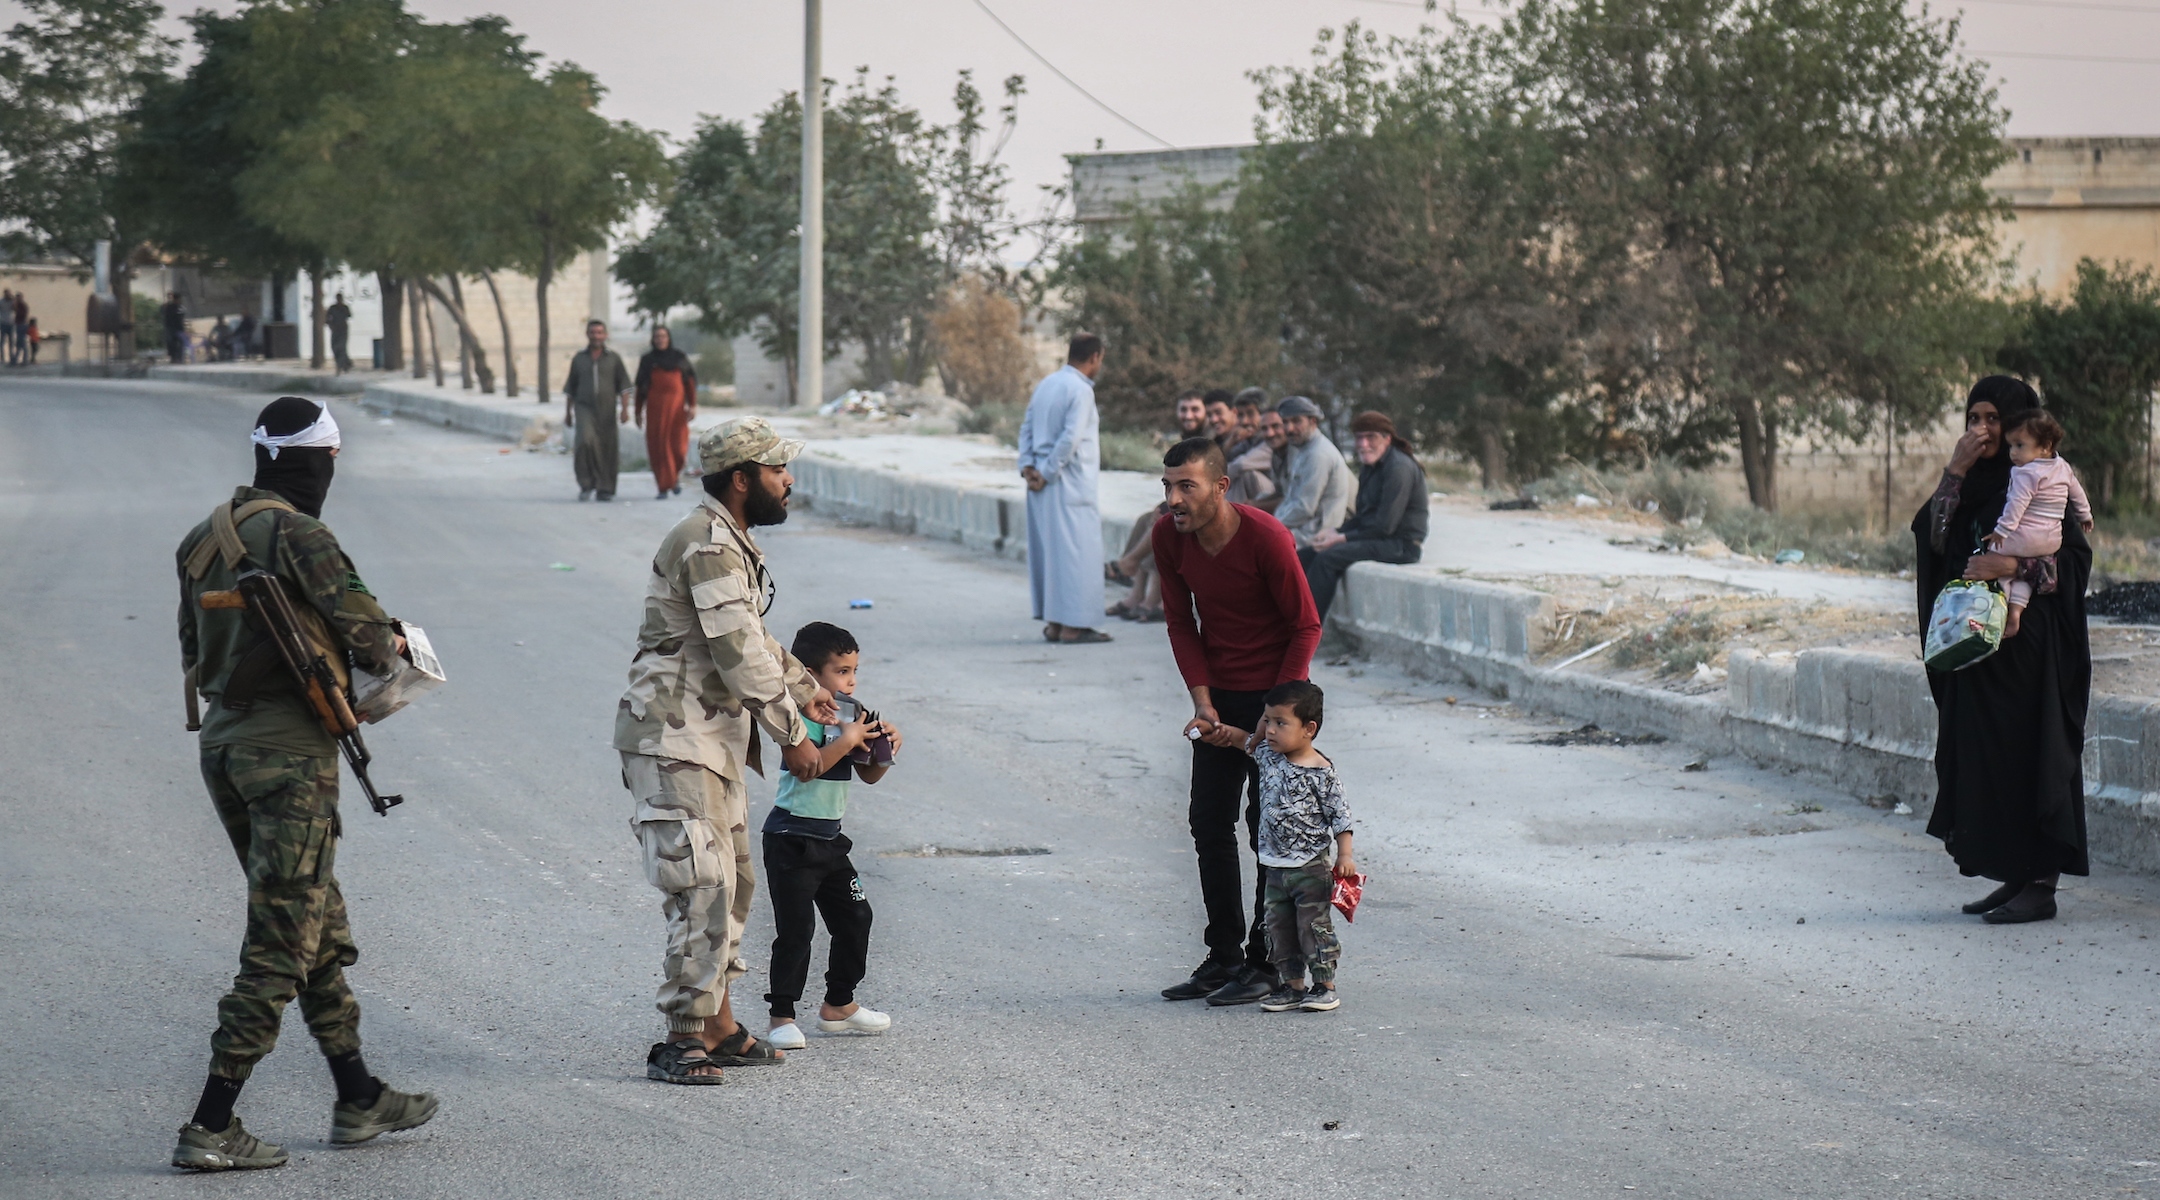 Soldiers of the Turkish-backed Syrian National Army talk to local residents in Tel Abiad, Syria on Oct. 14, 2019. (Anas Alkharboutli/Getty Images)